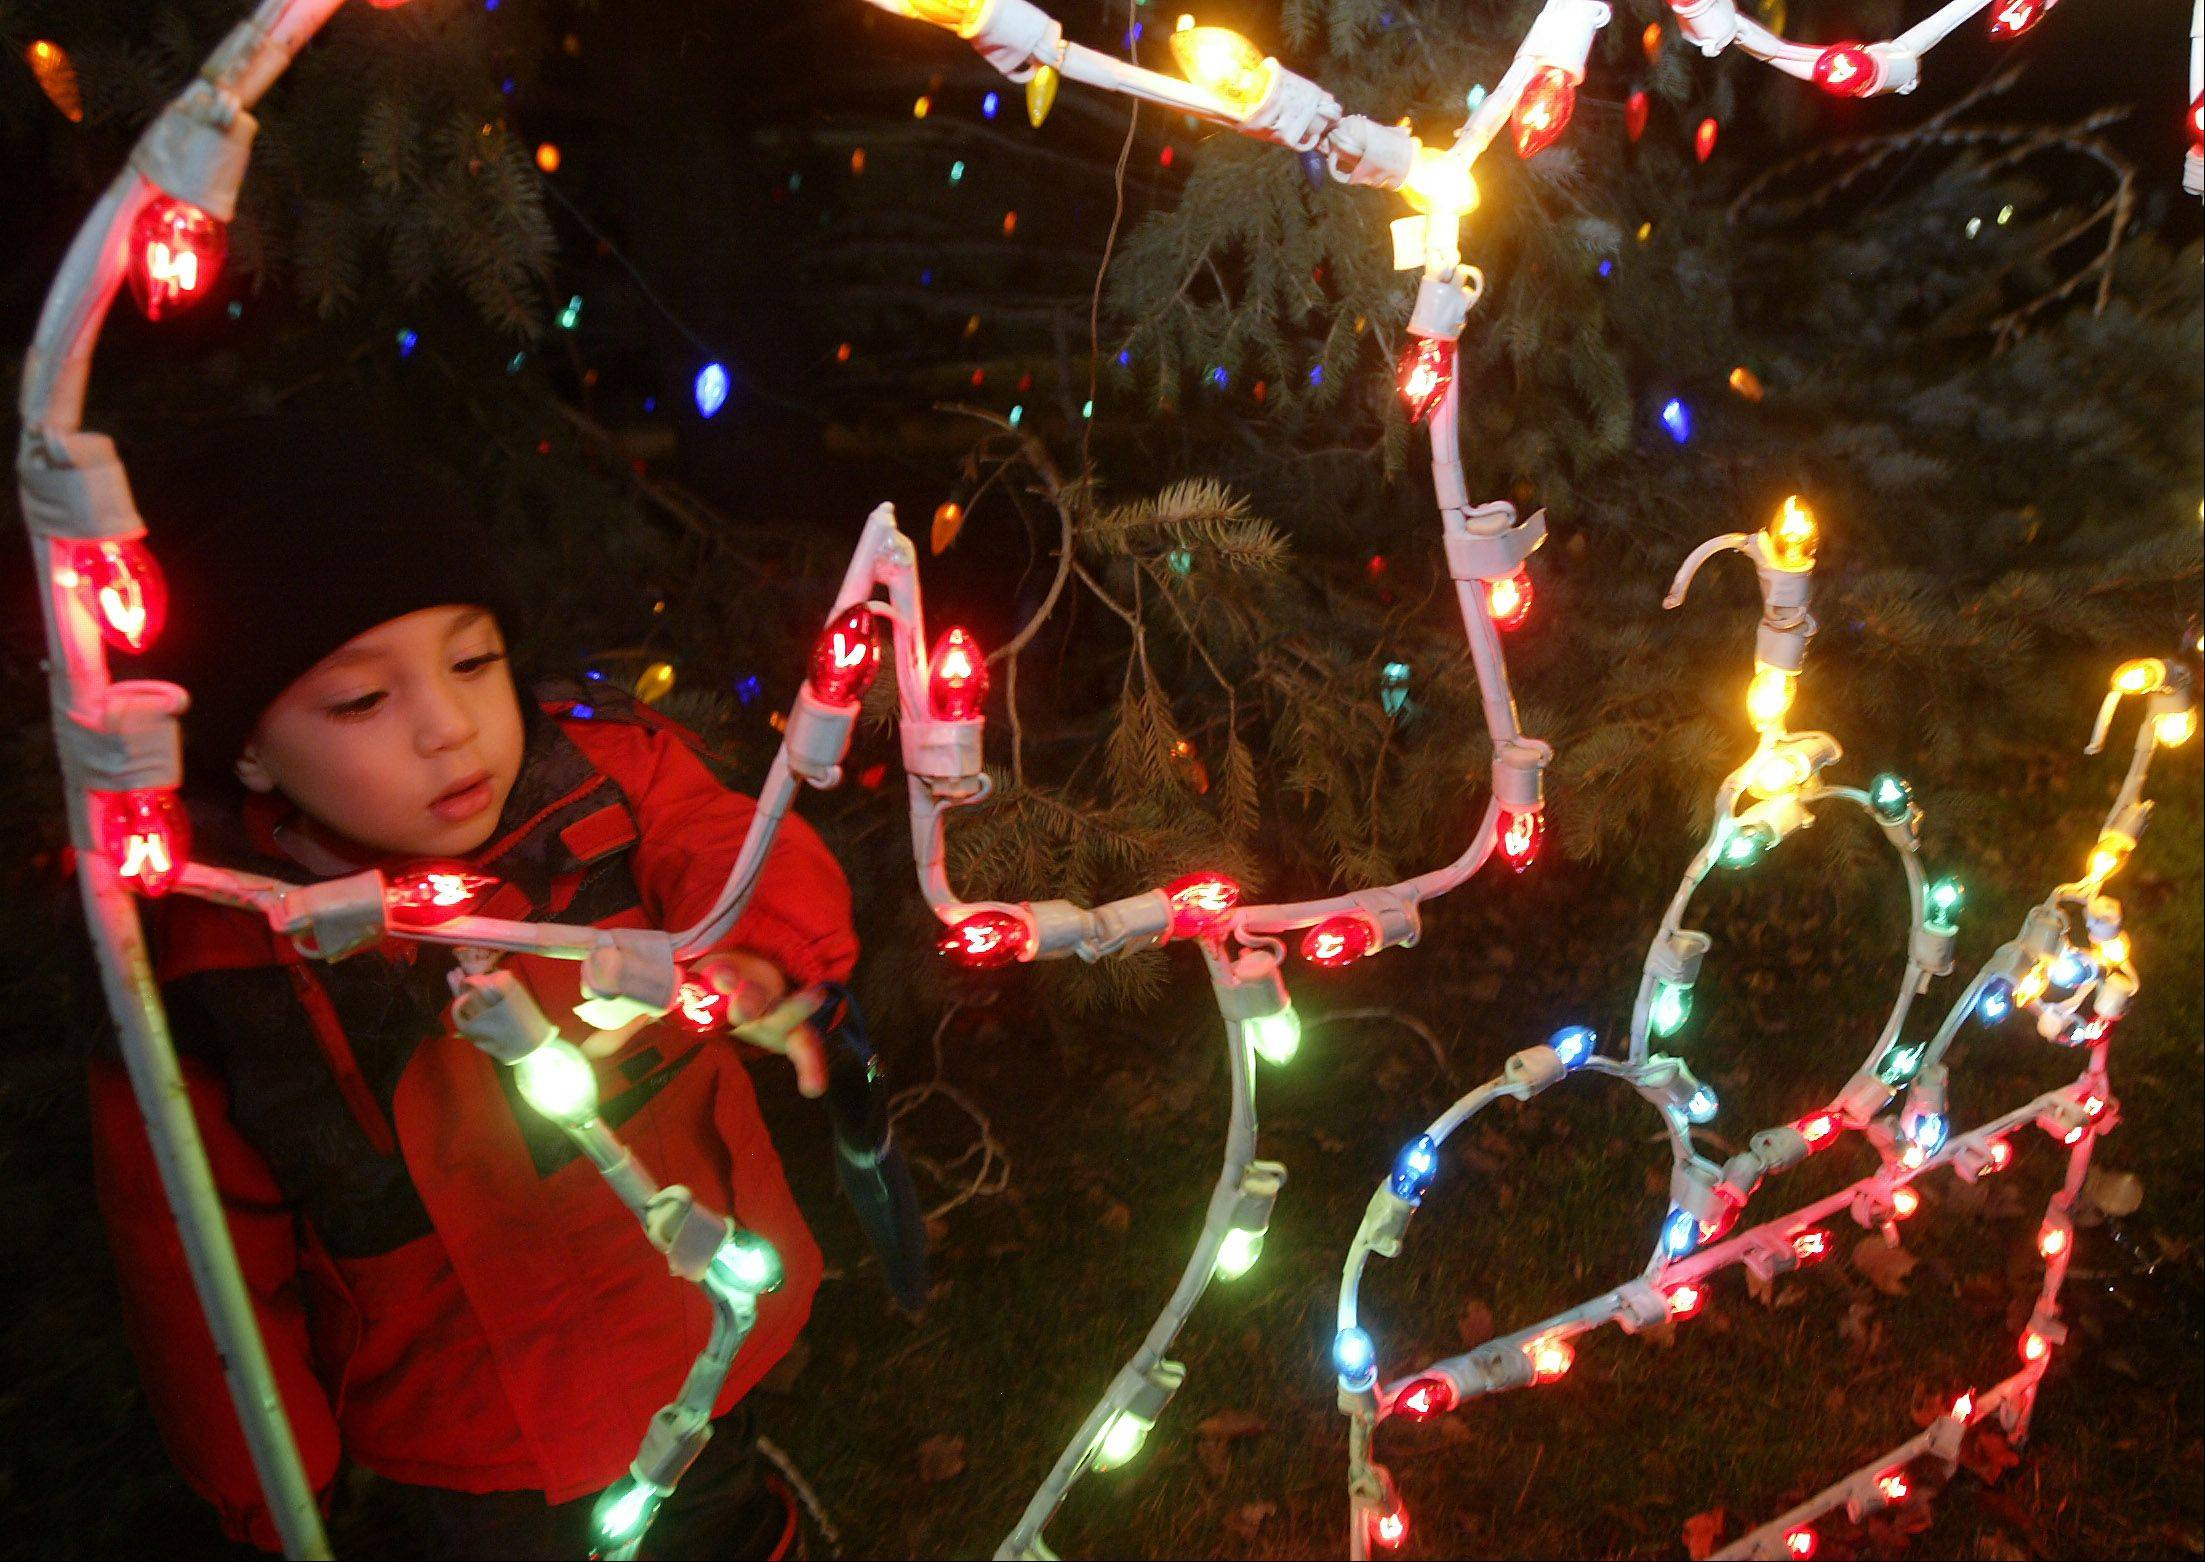 Westley Johnson, 3, of Elgin, examines lights during the last year's tree lighting ceremony in downtown Elgin. This year's tree lighting is set for 5 p.m. Saturday, Dec. 1.